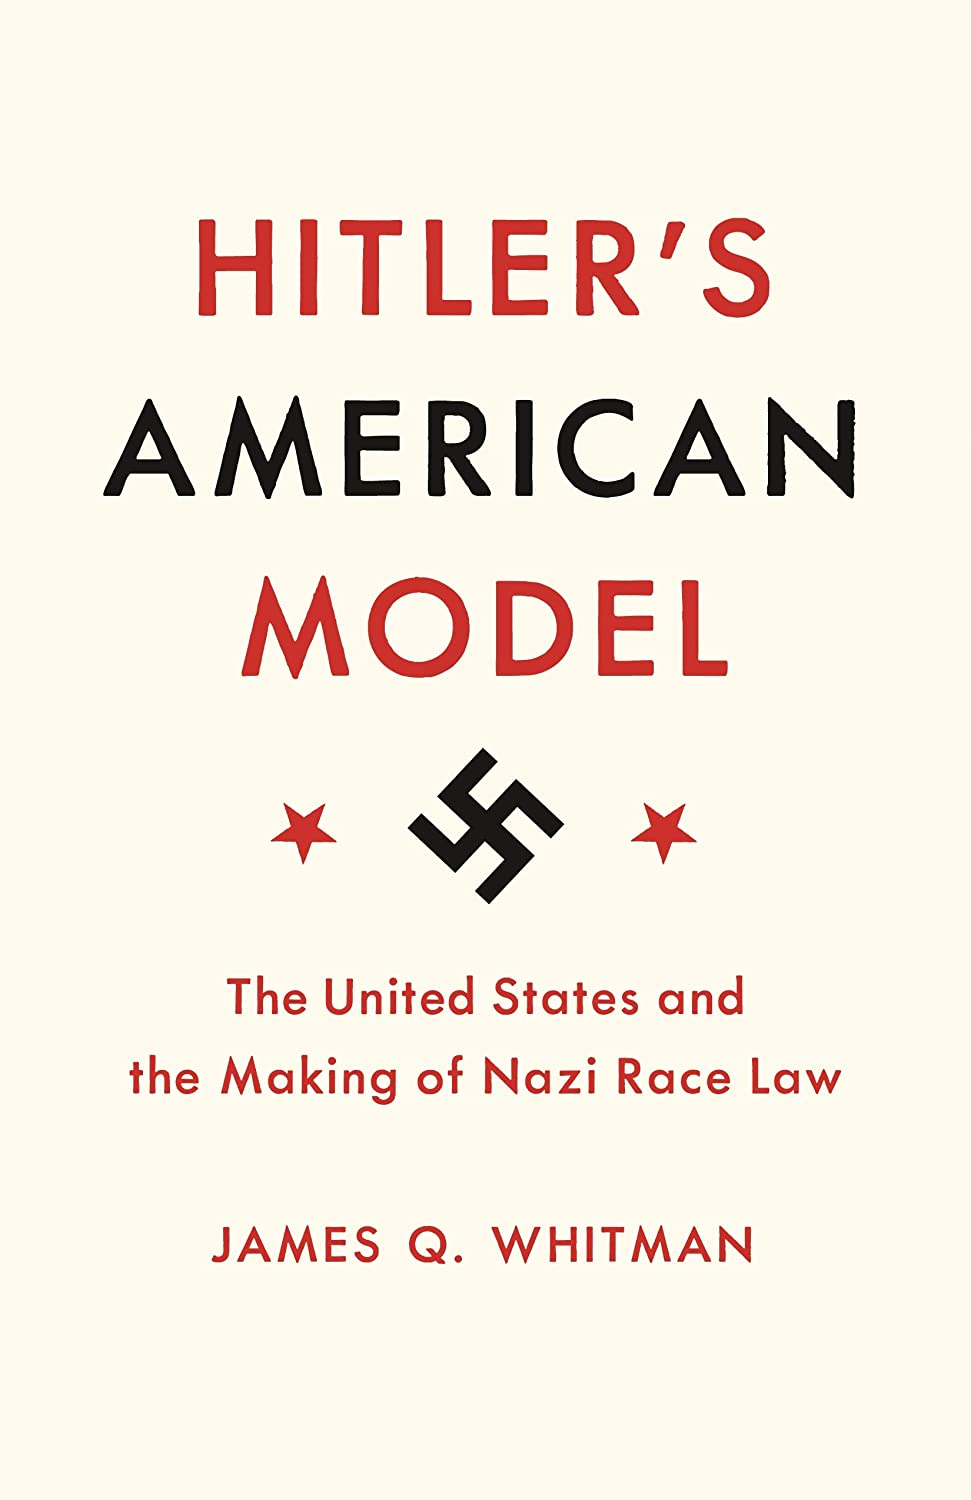 Hitlers American Model: The United States and the Making of Nazi Race Law (English Edition) eBook: Whitman, James Q.: Amazon.es: Tienda Kindle